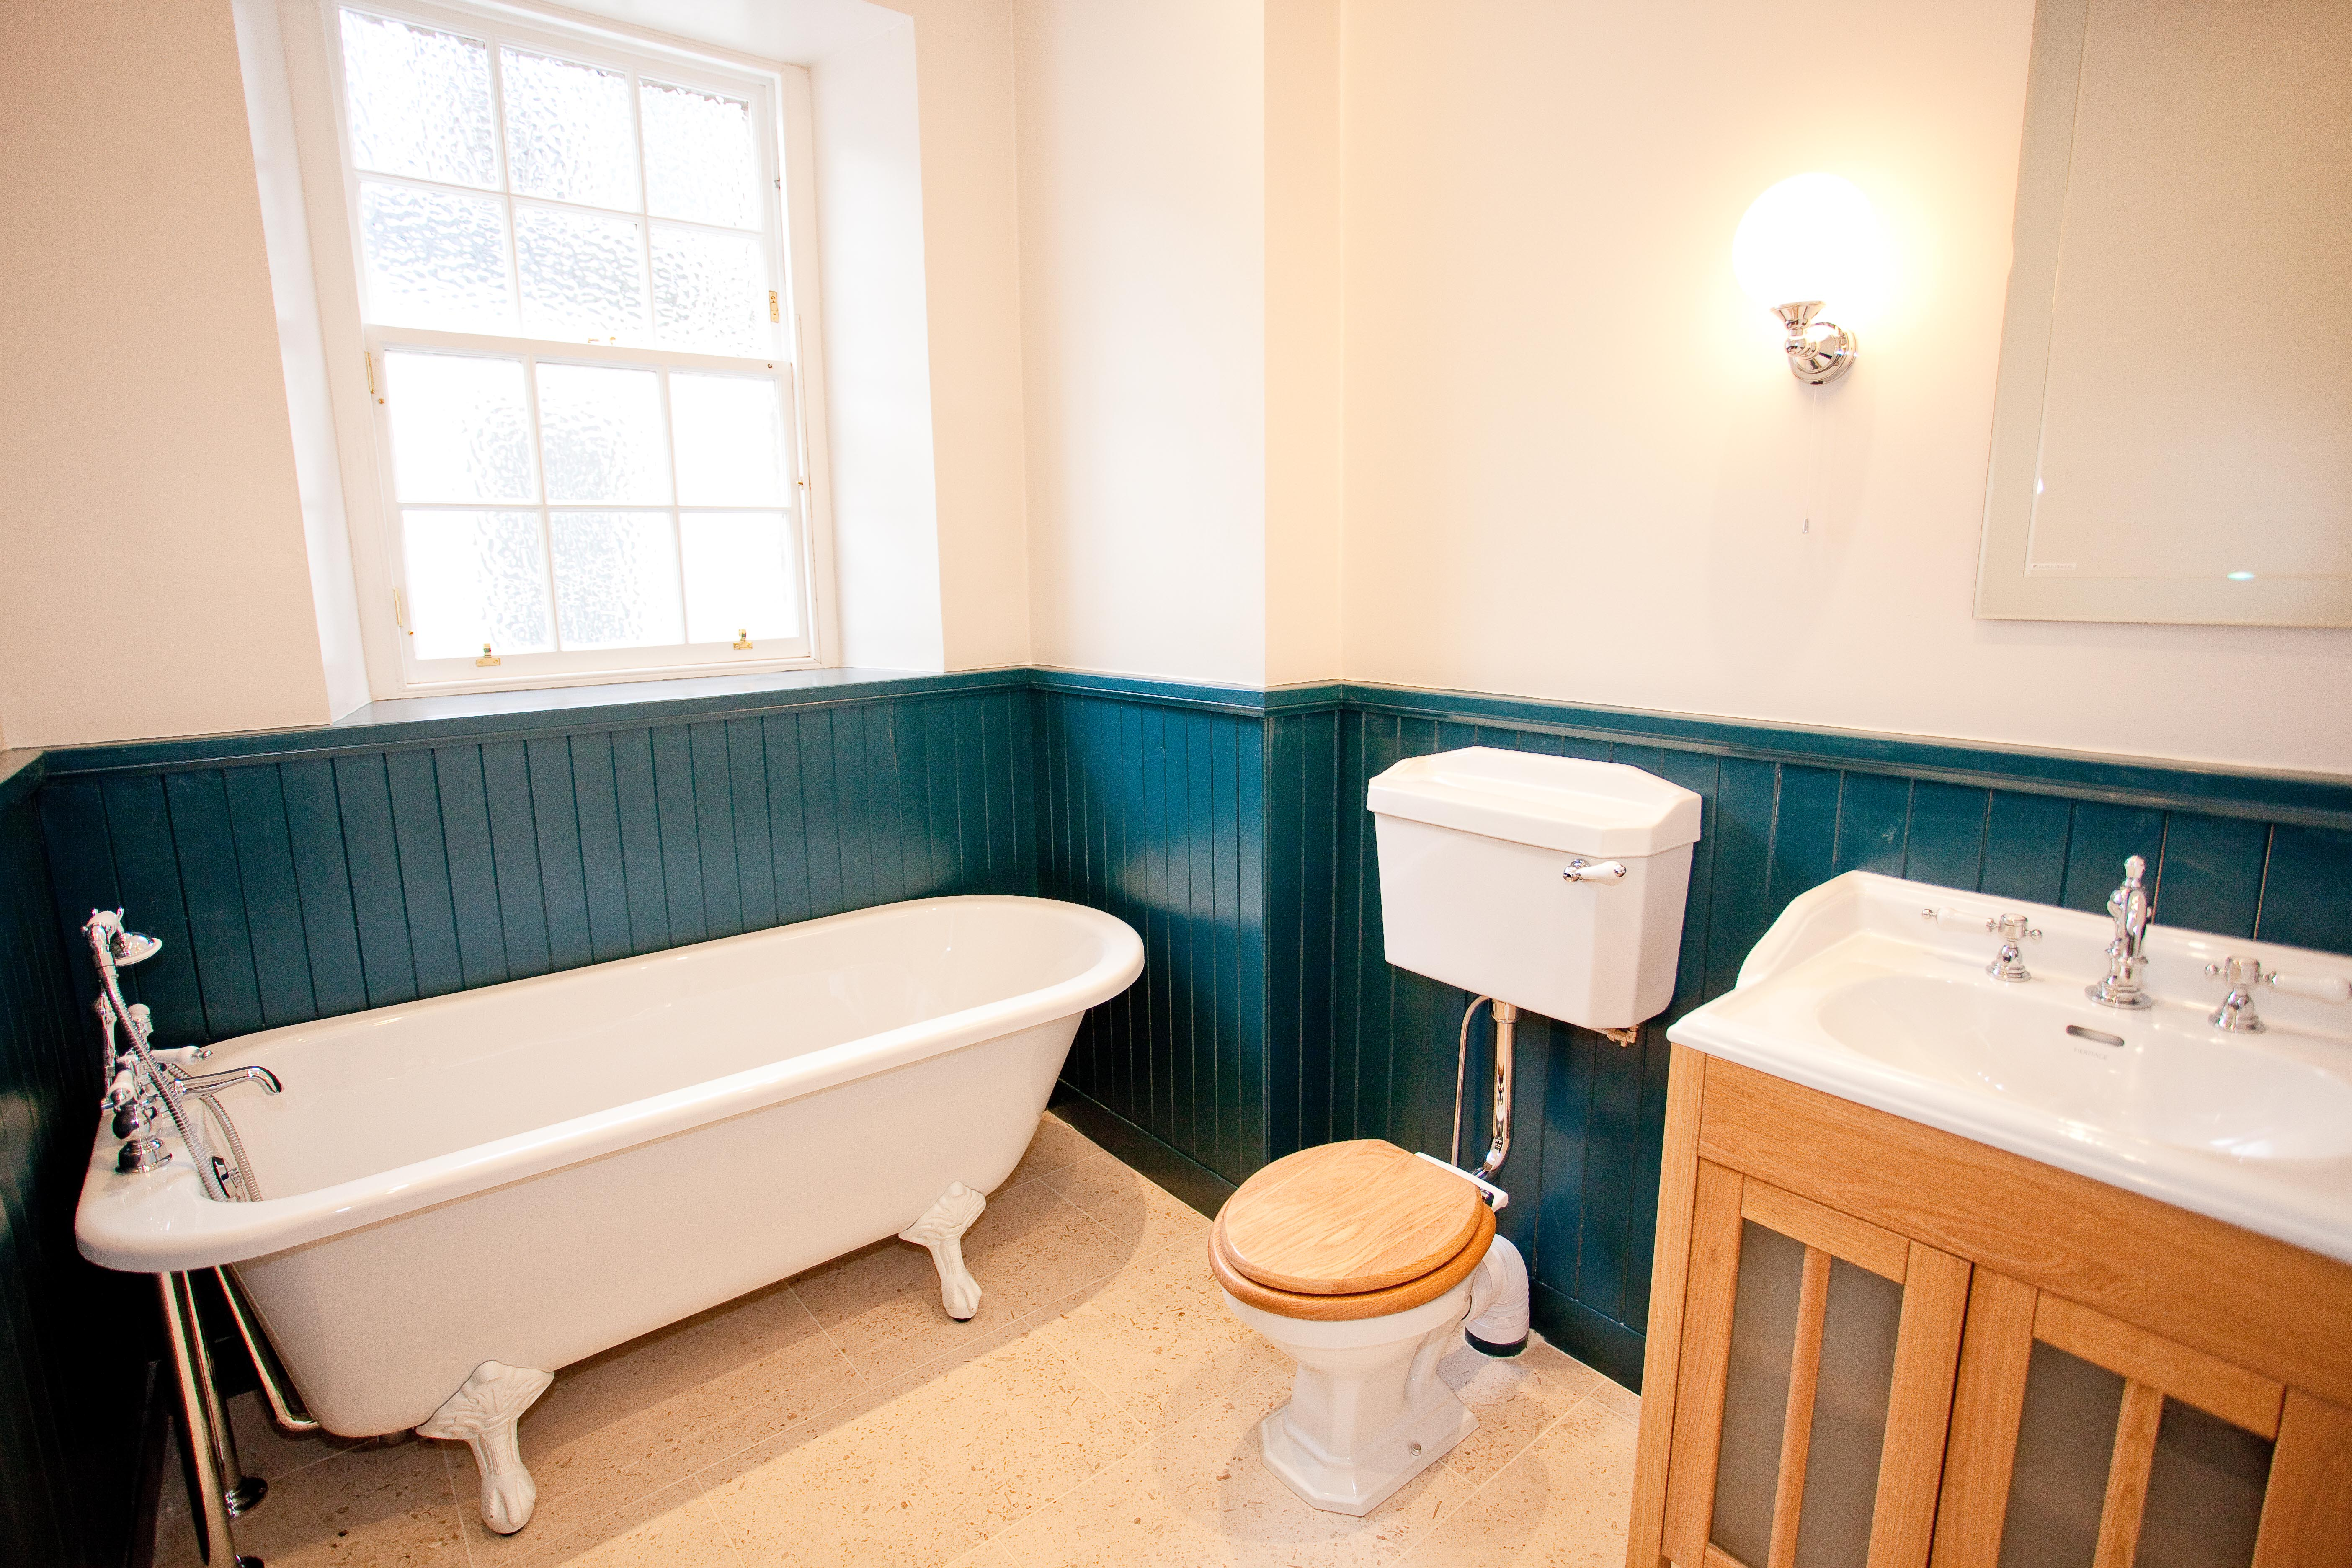 Traditional bathroom design edinburgh with painted wood panelling.